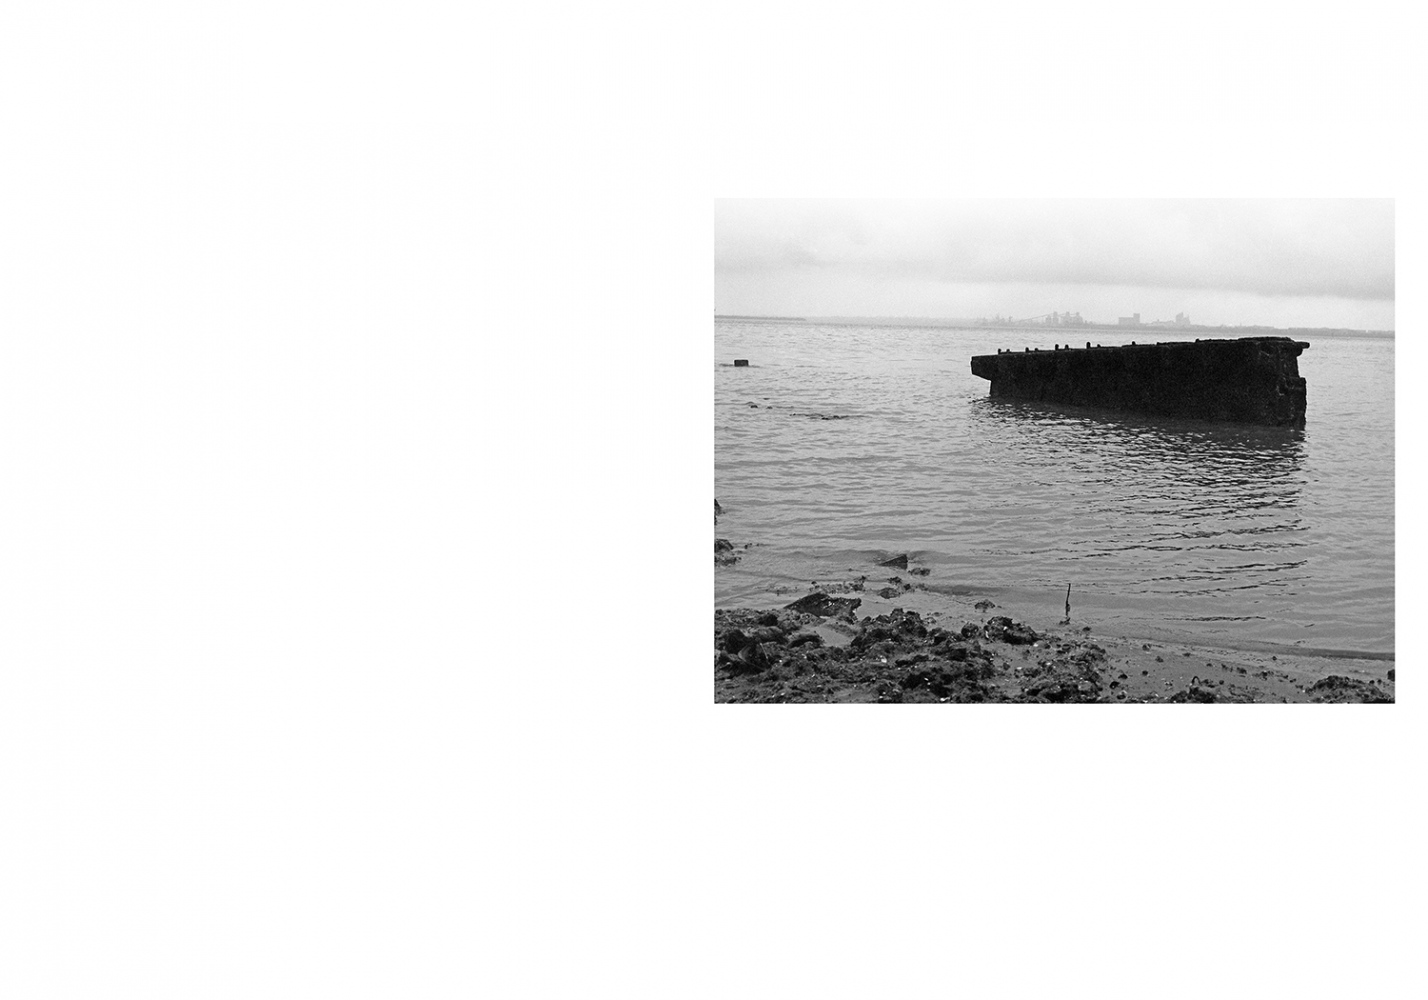 Art and Documentary Photography - Loading Residues_book_layout_021.jpg